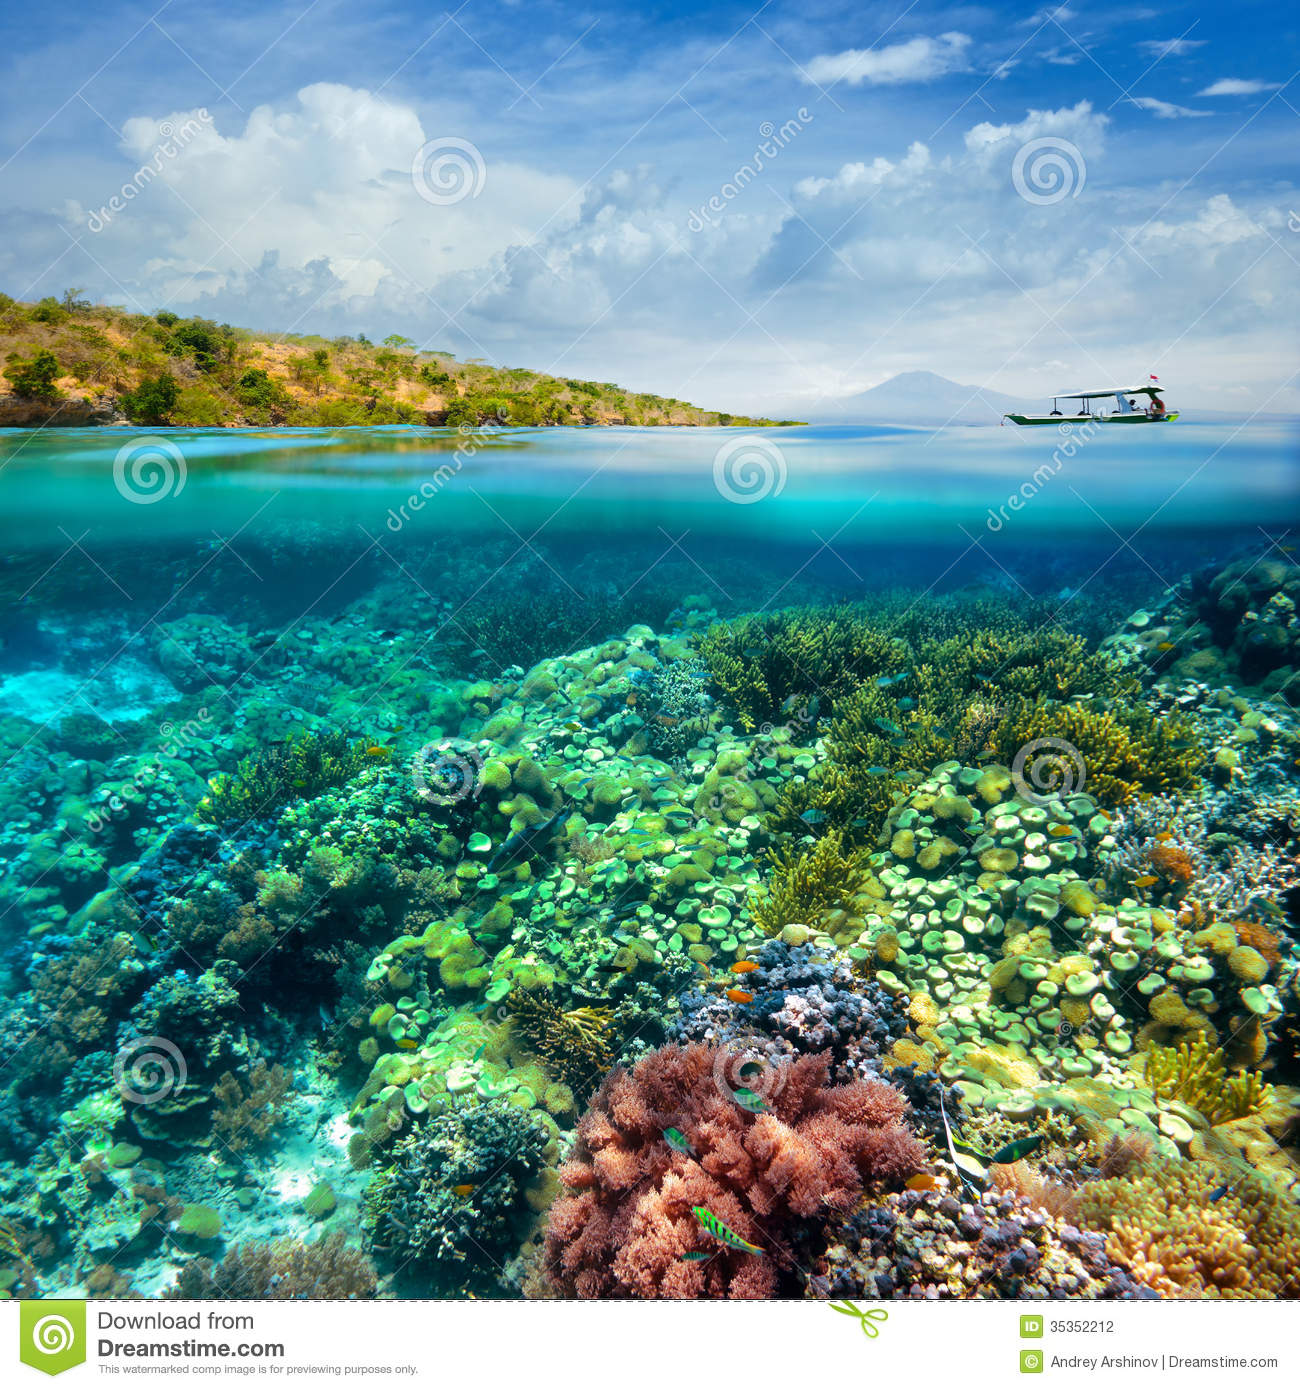 Beautiful Coral Reef On Background Of Cloudy Sky And Volcano. Stock